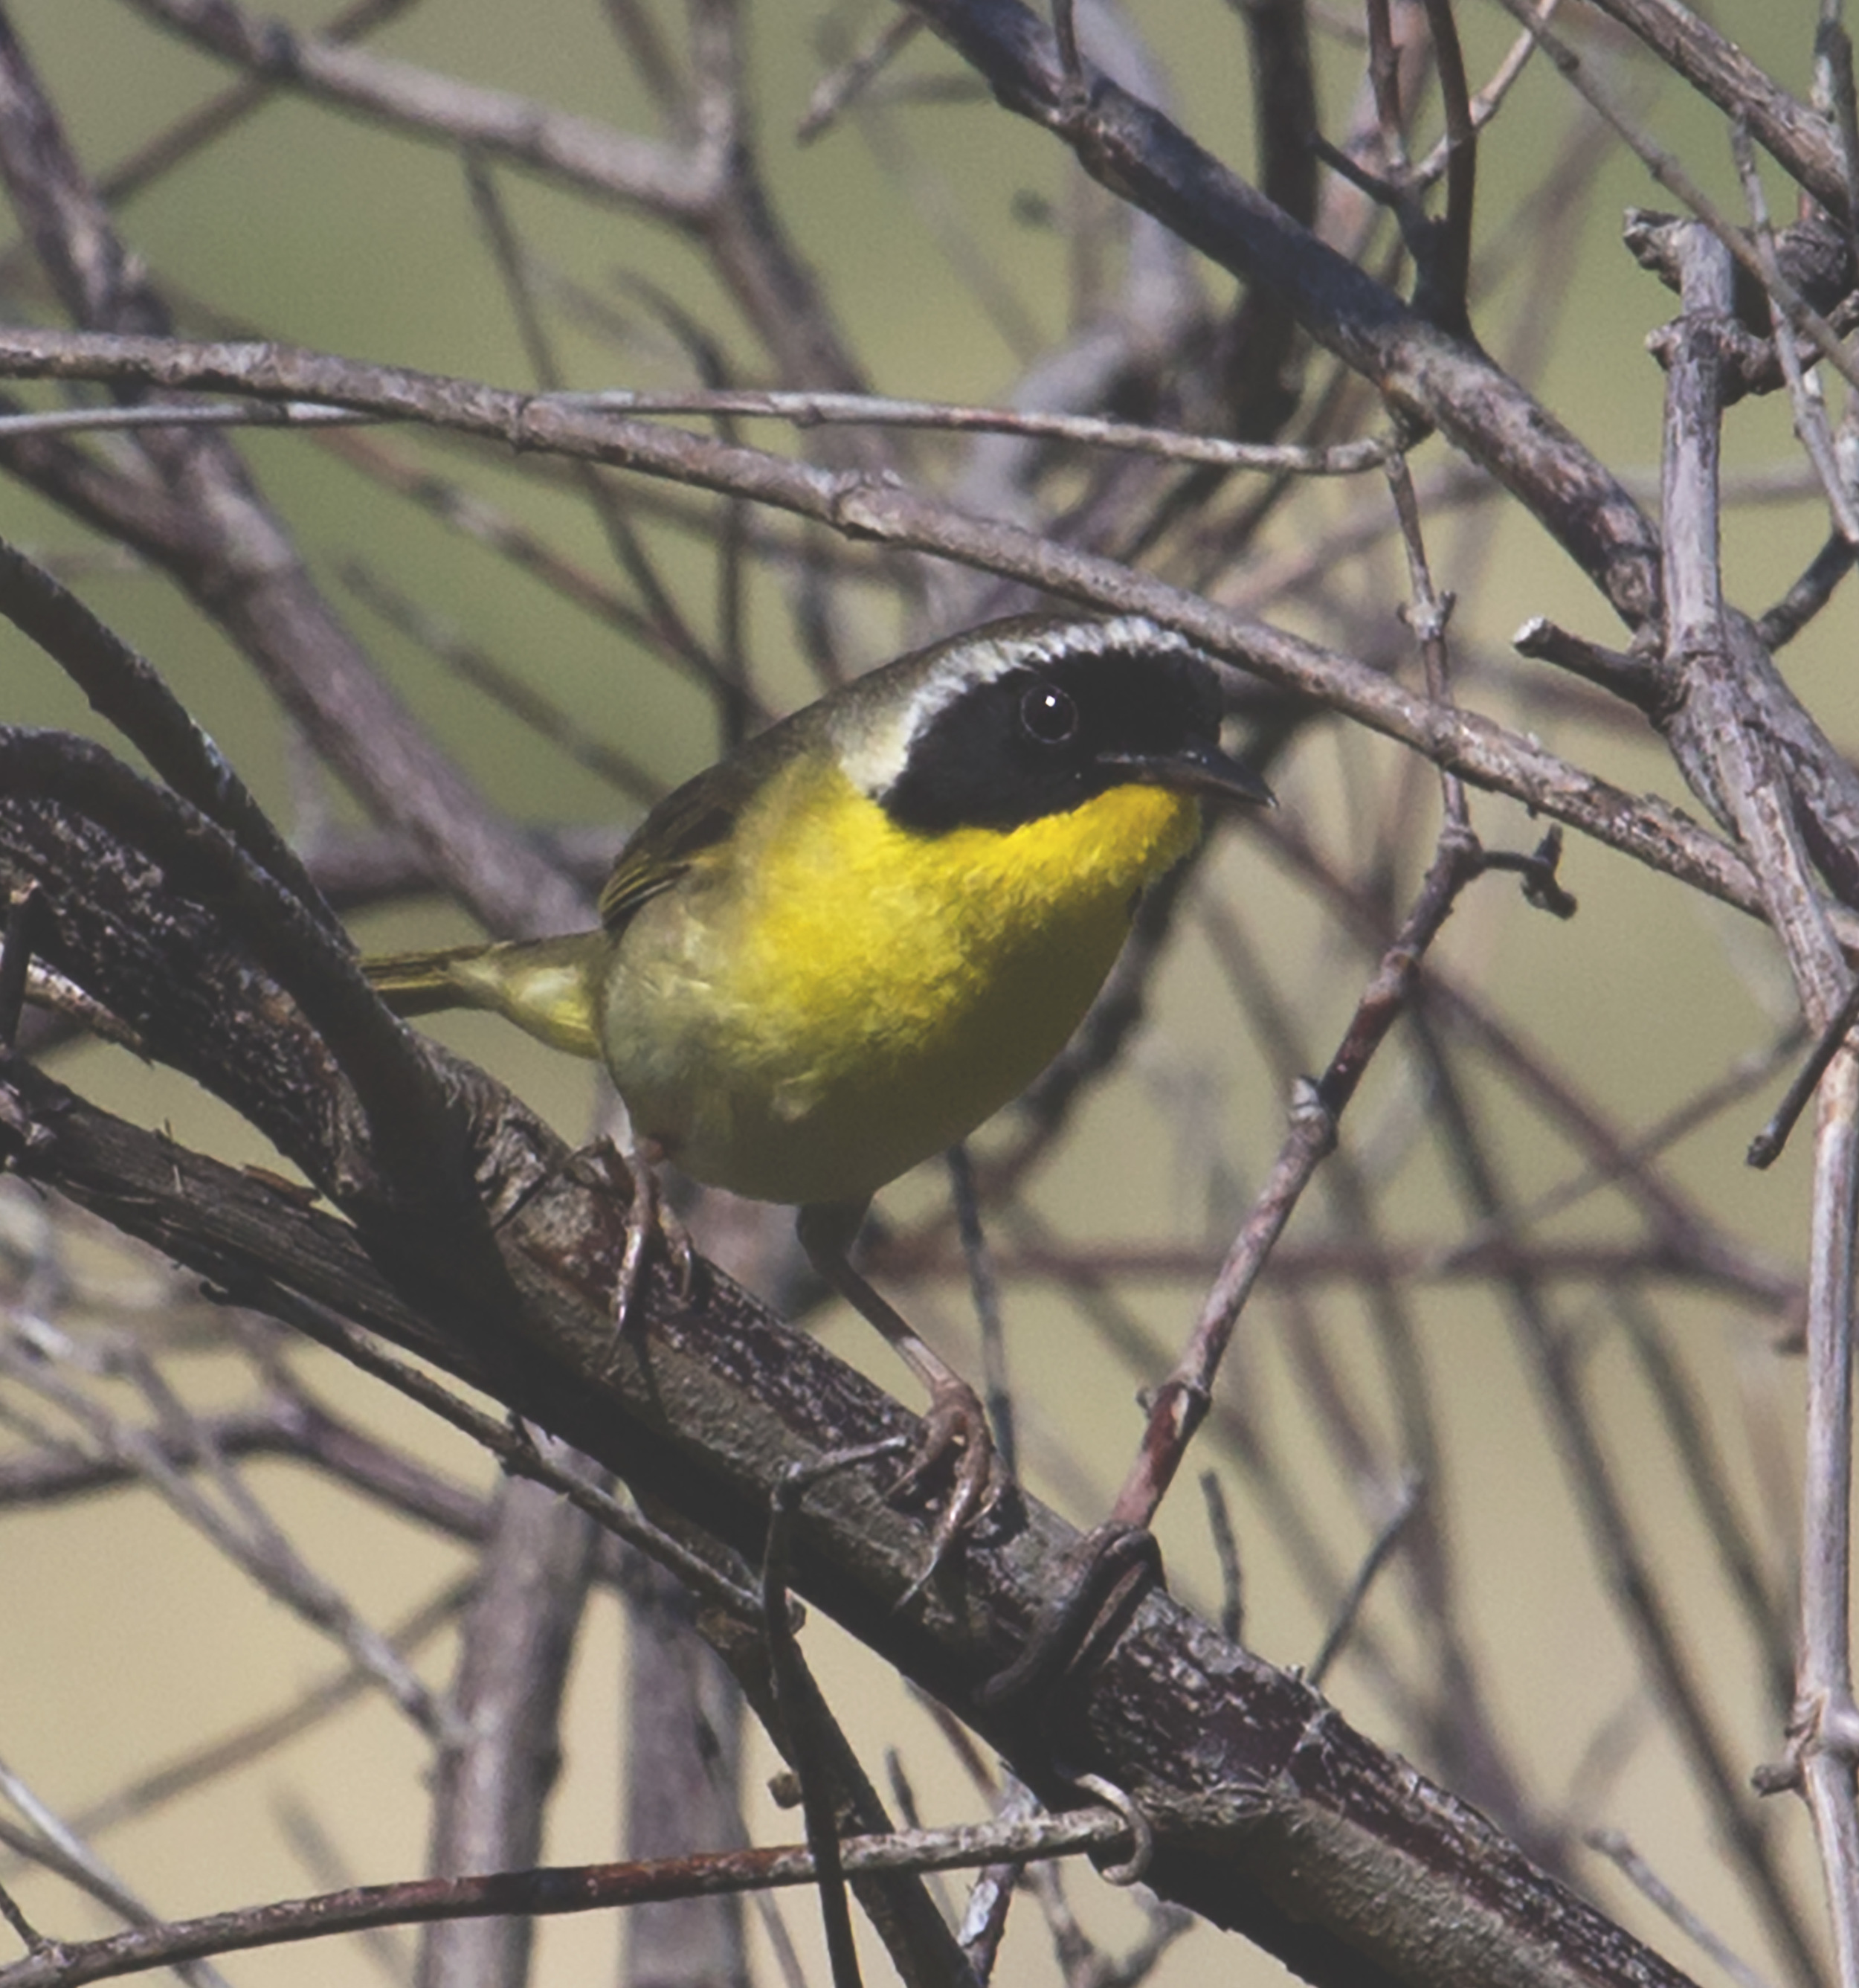 A male common yellowthroat shows off his bandit's mask